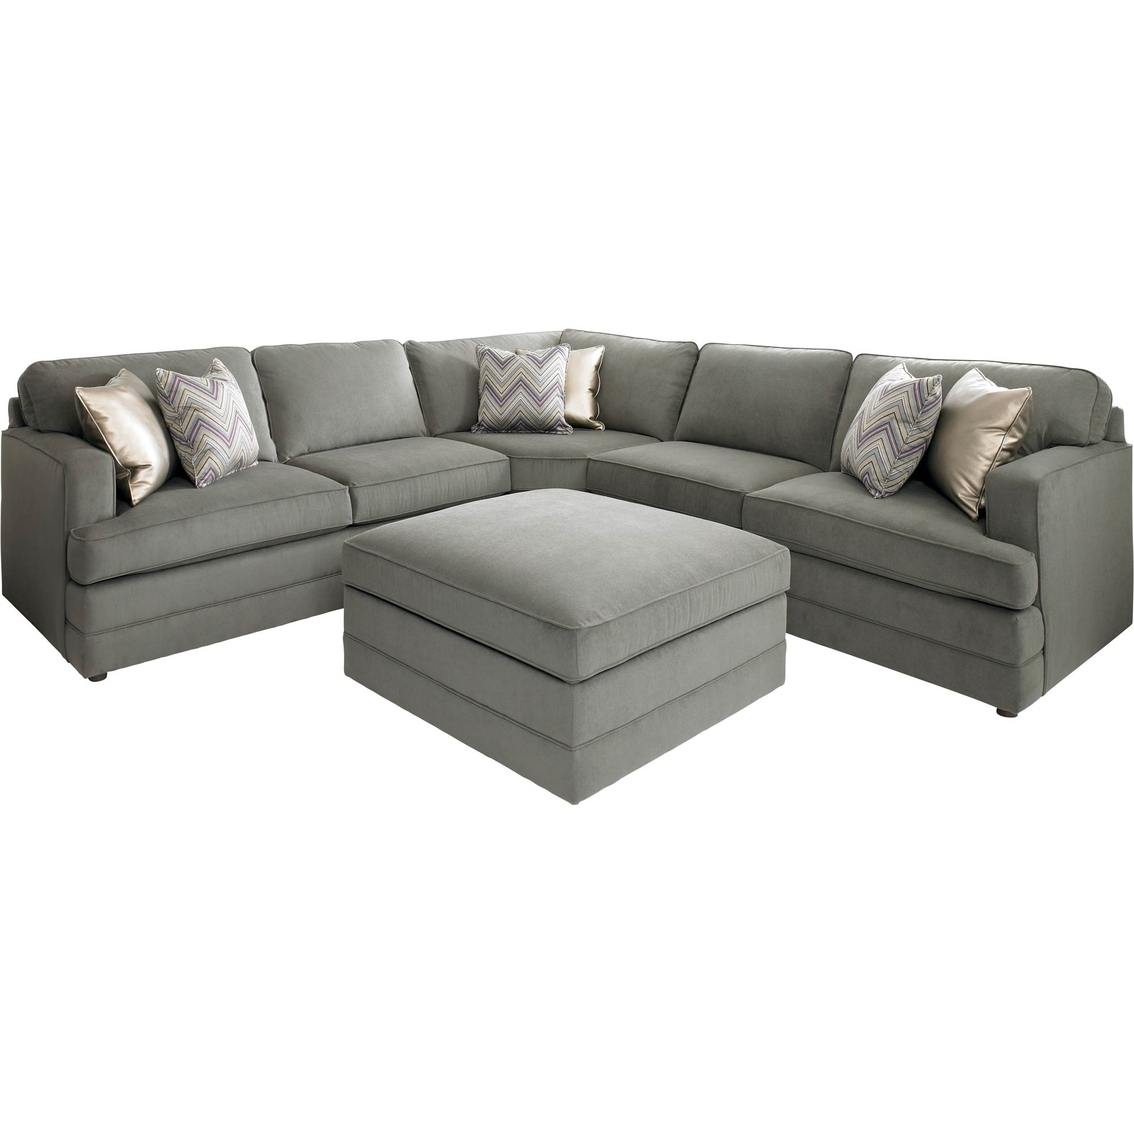 Bassett Dalton L Shaped Sectional Sofa With Ottoman | Making Our Intended For High Point Nc Sectional Sofas (Image 1 of 10)